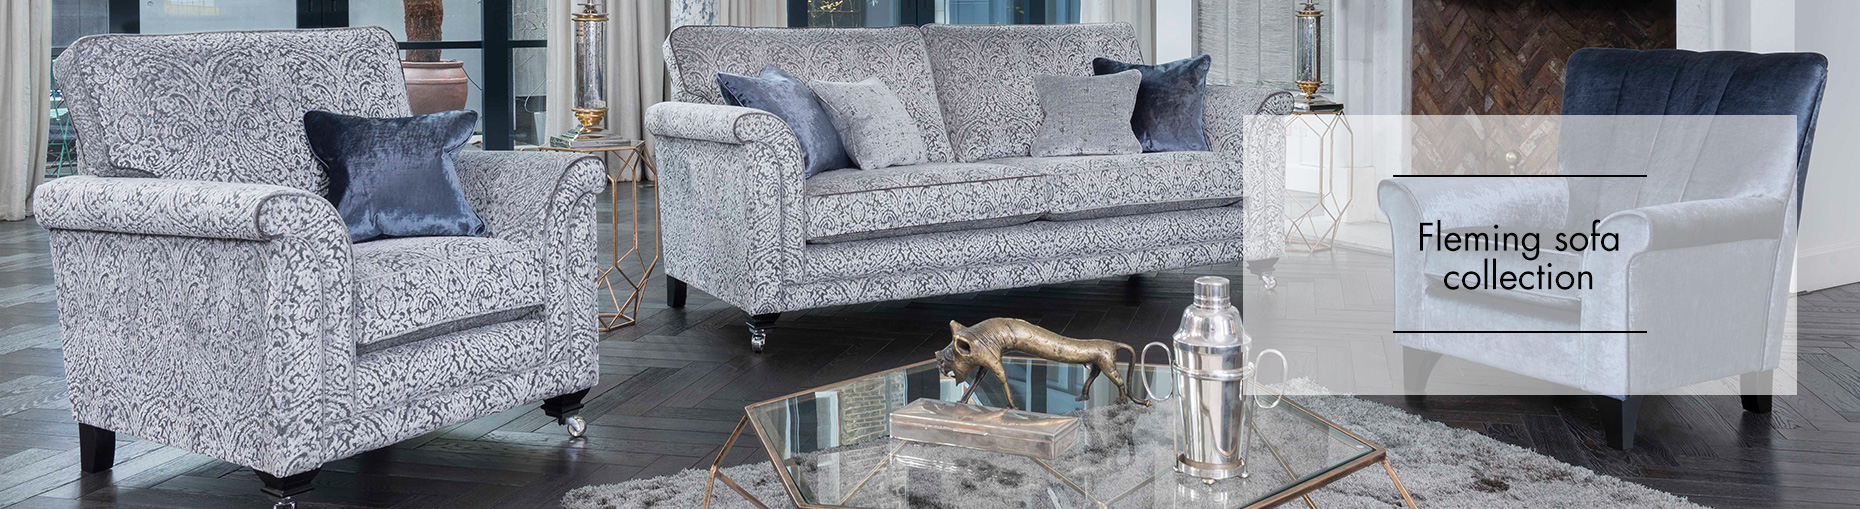 Fleming Sofa collection by Alstons Upholstery at Forrest Furnishing